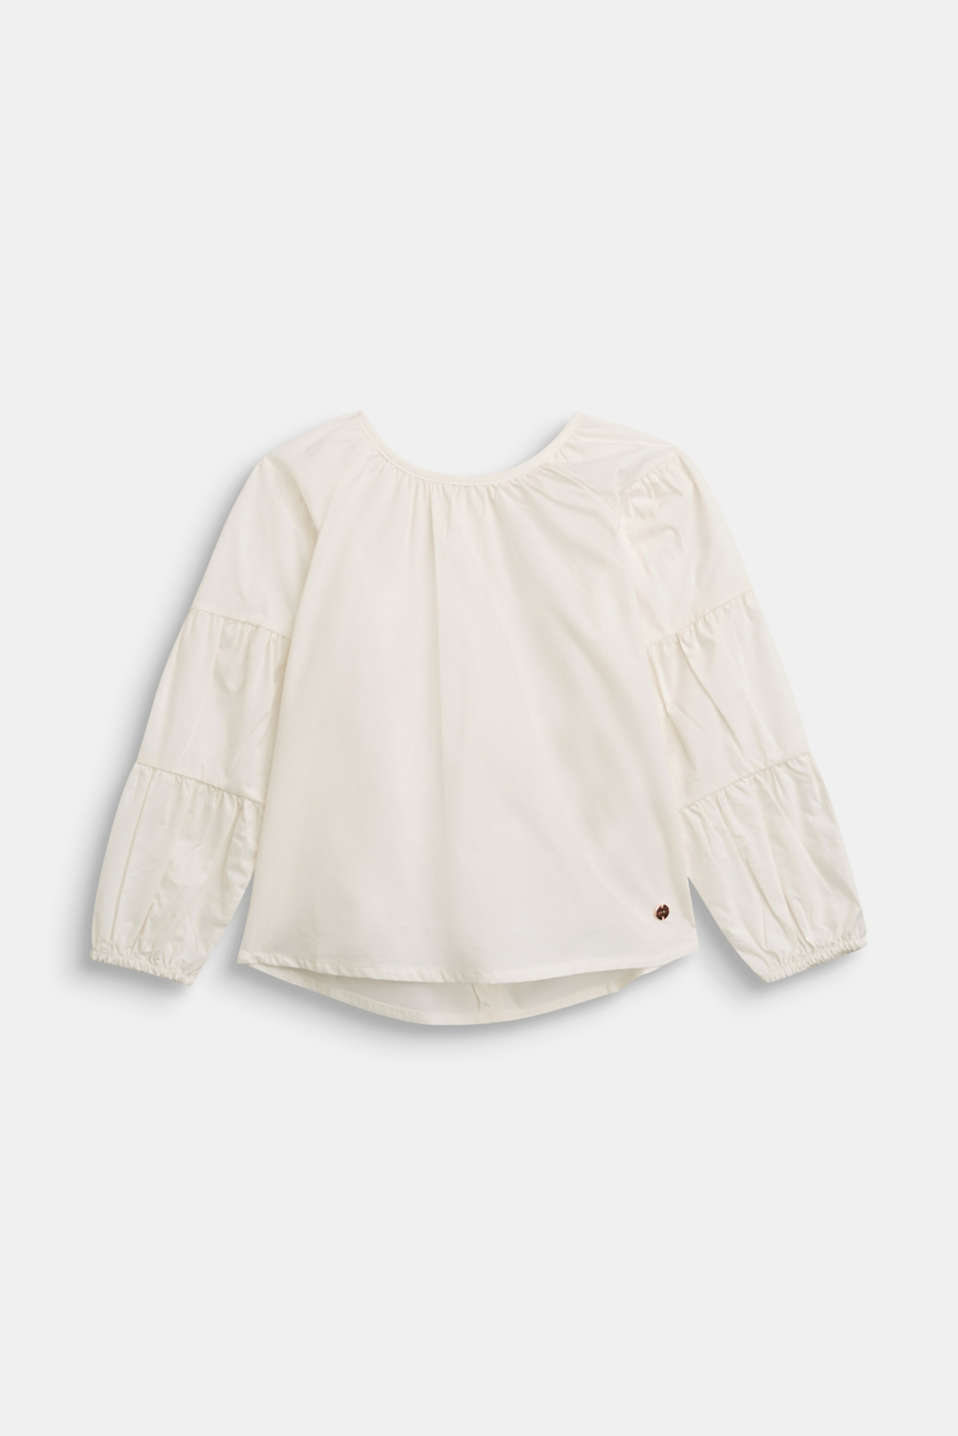 Esprit - Blouse with gathered sleeves, 100% cotton